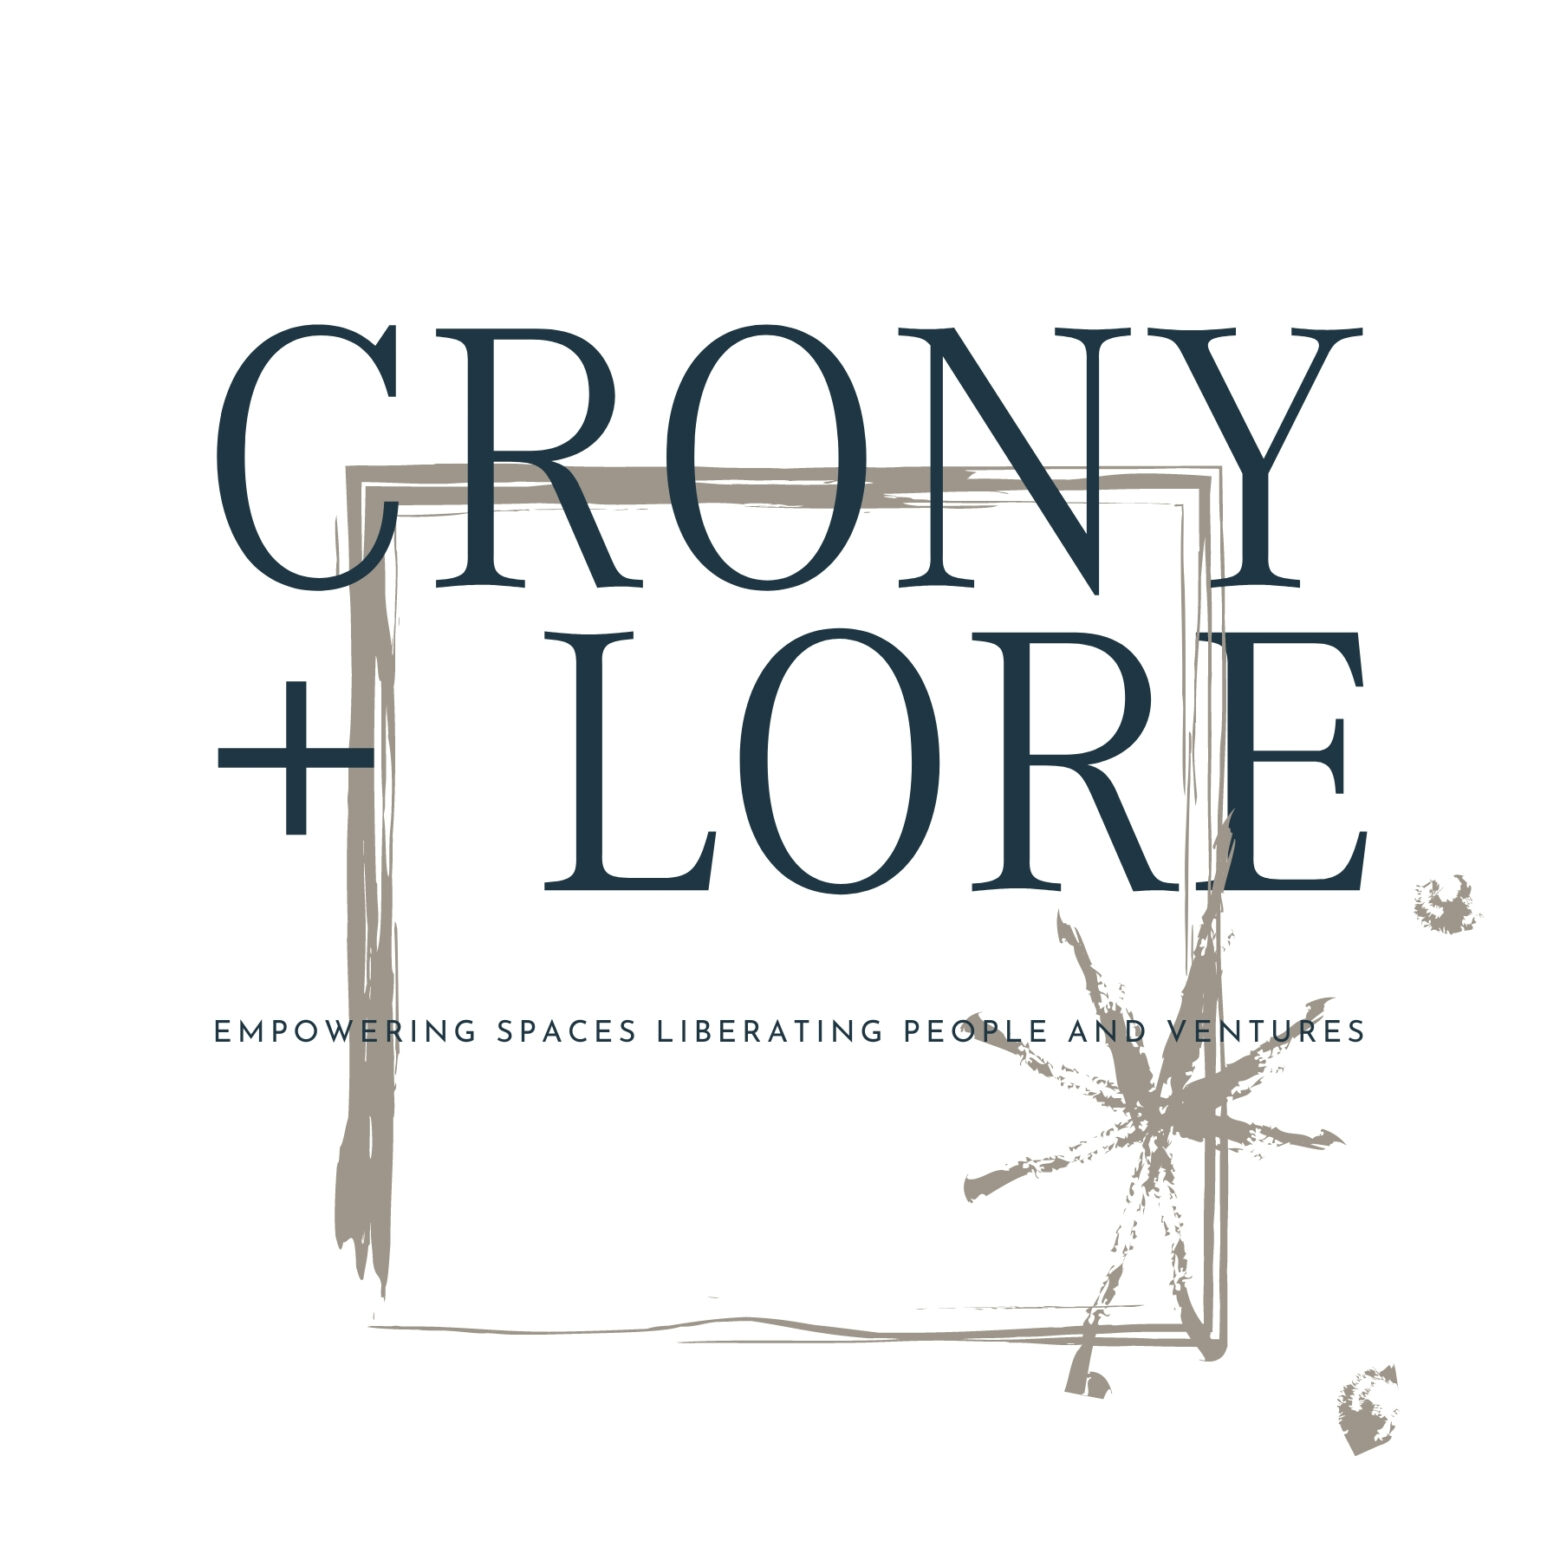 Crony+Lore Empowering Spaces, Liberating People and Ventures